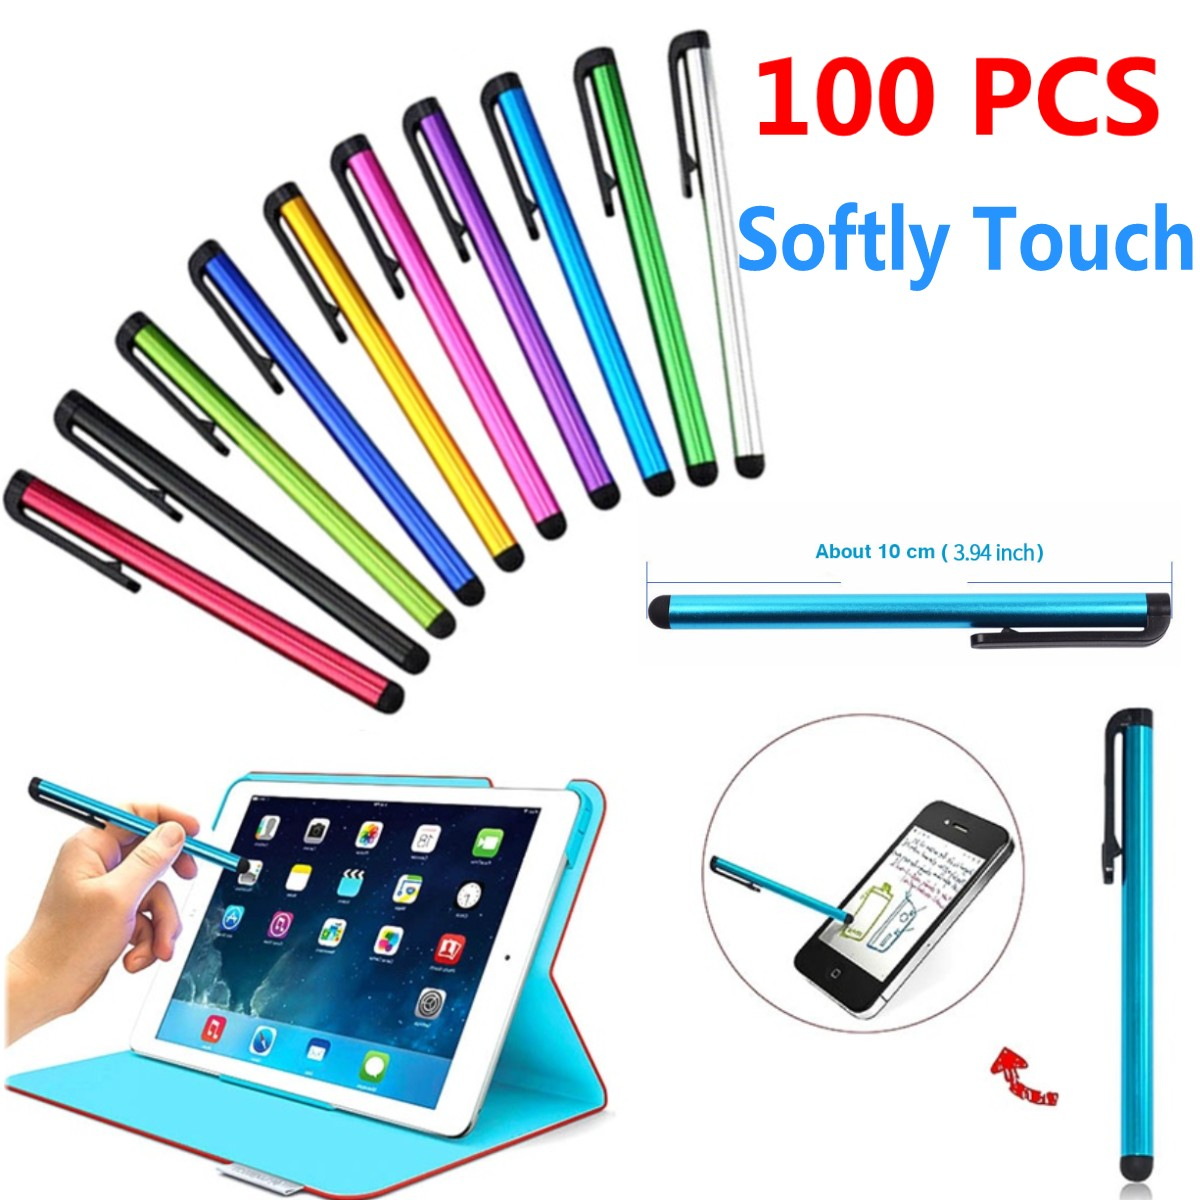 10 Pcs High Quality Stylus Touch Screen Pen for iPad Cellphone Tablet PC iPod